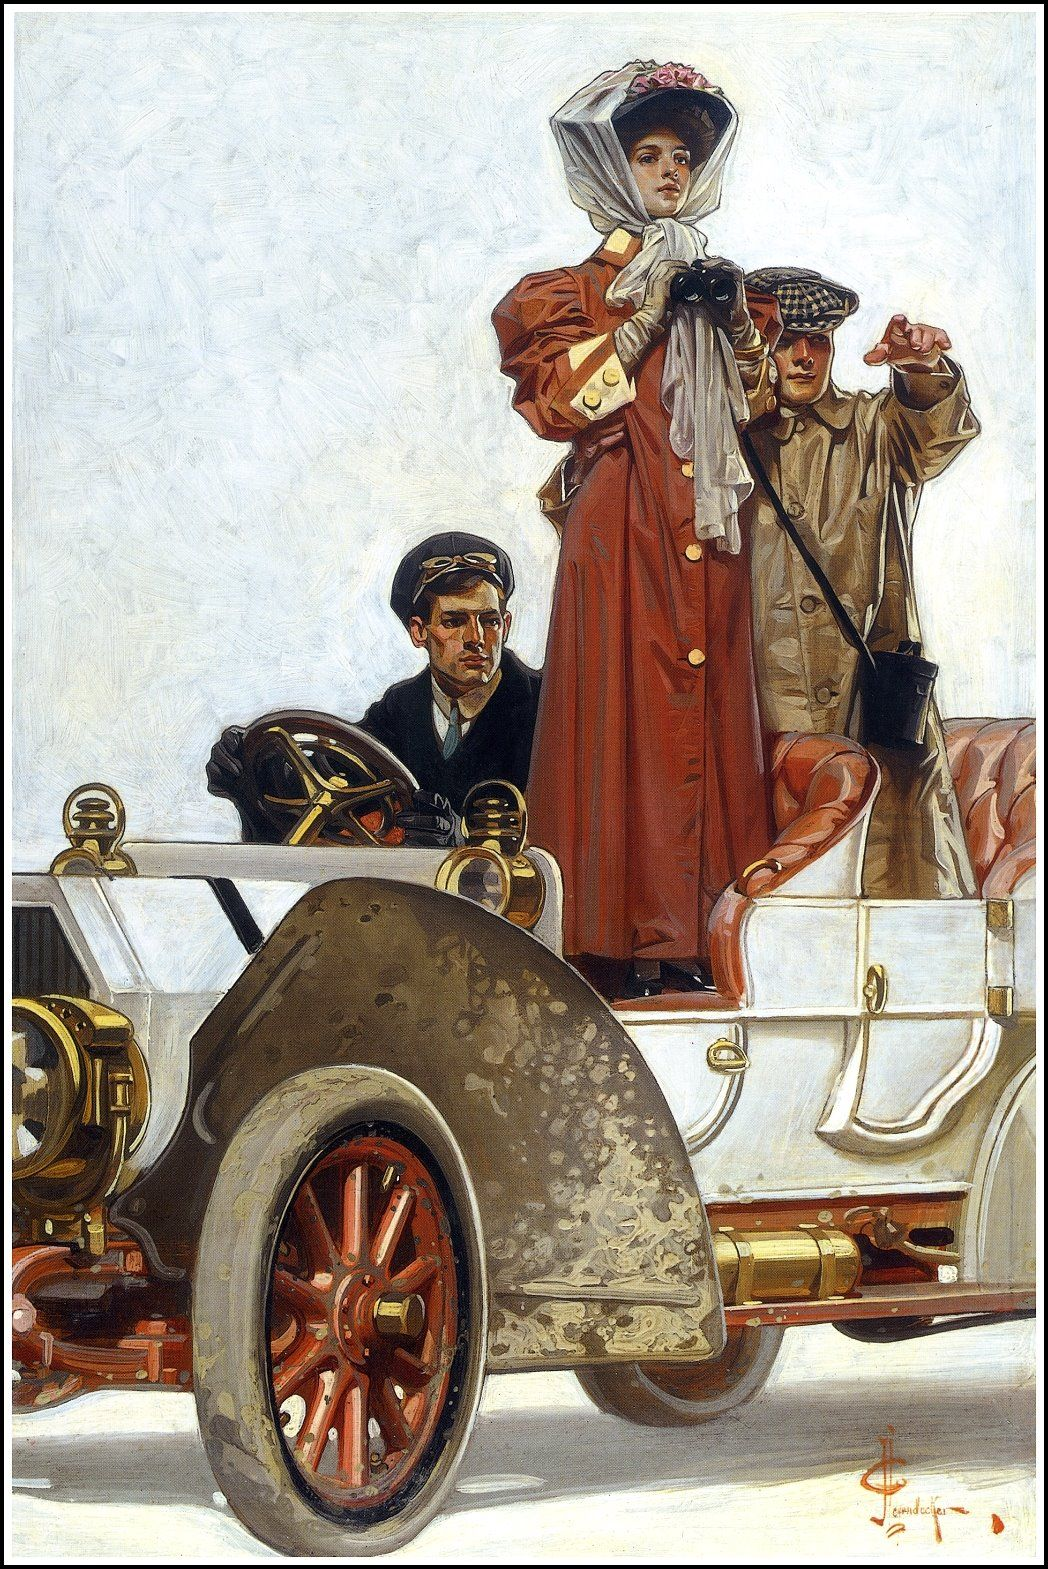 J.C. Lyendecker - The Lady and her Motorcar - 1906